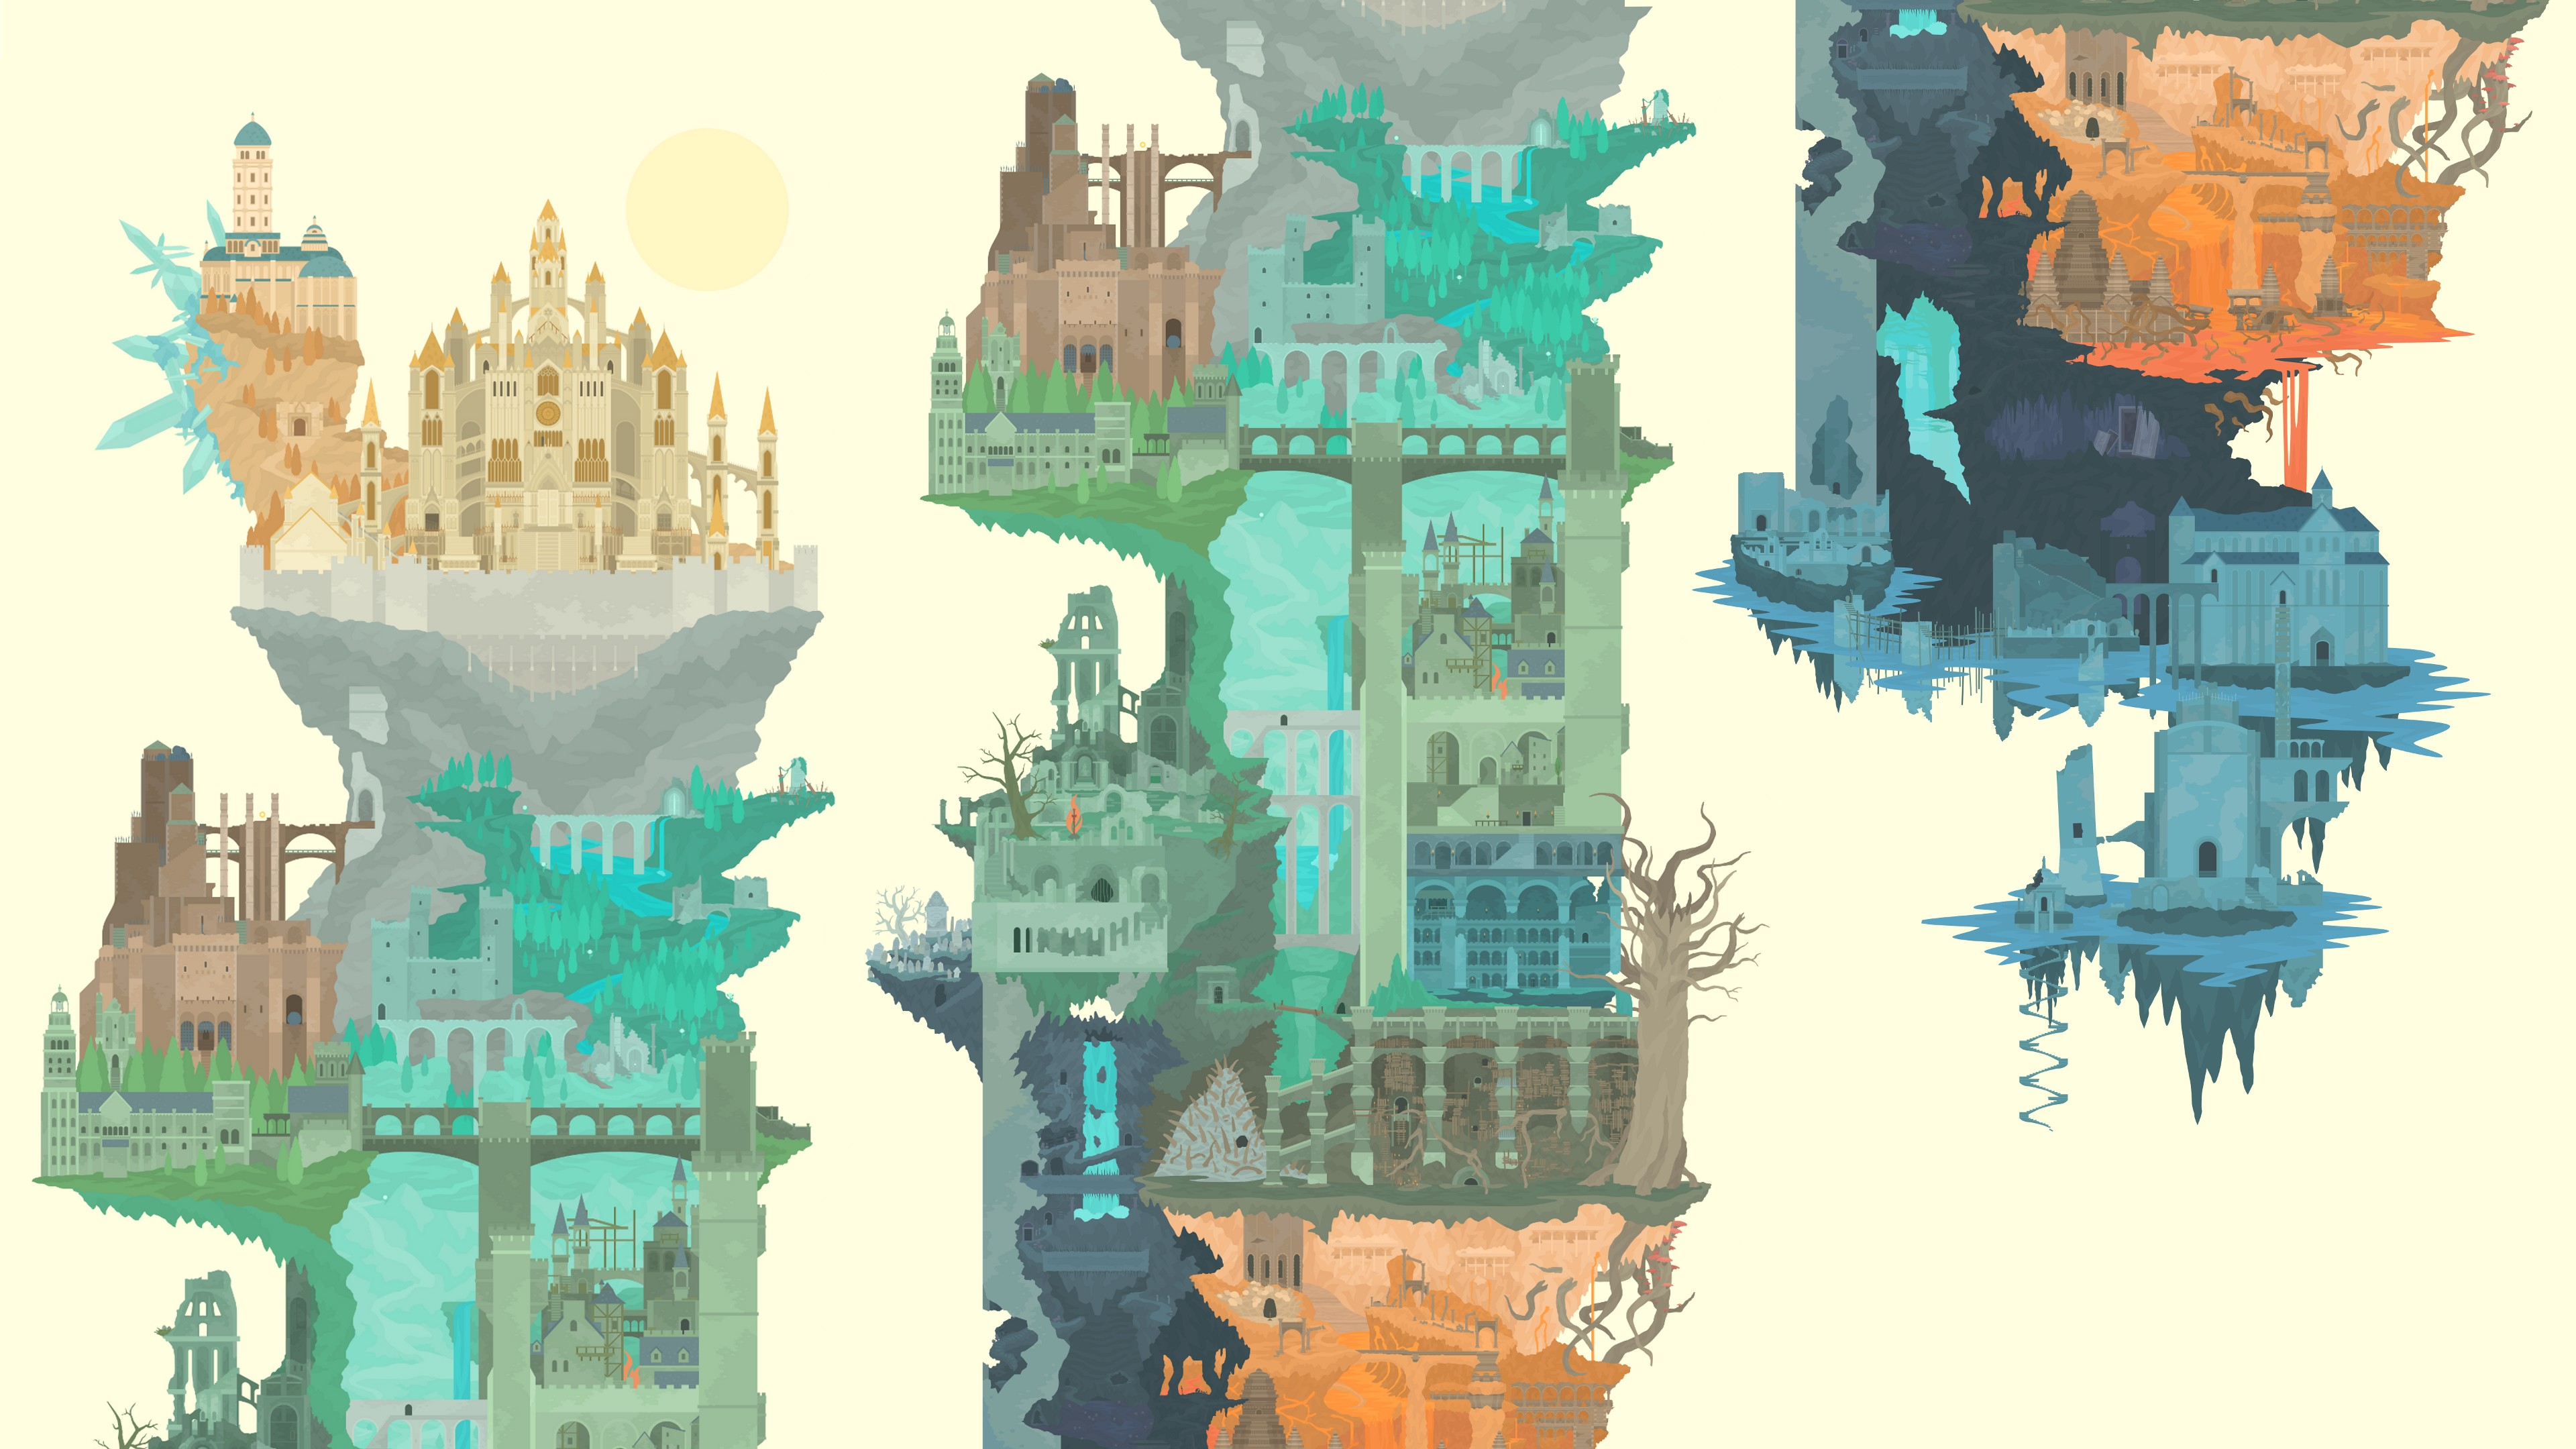 3840x2160 Wallpaper Painting, Illustration, Video Games, Cityscape